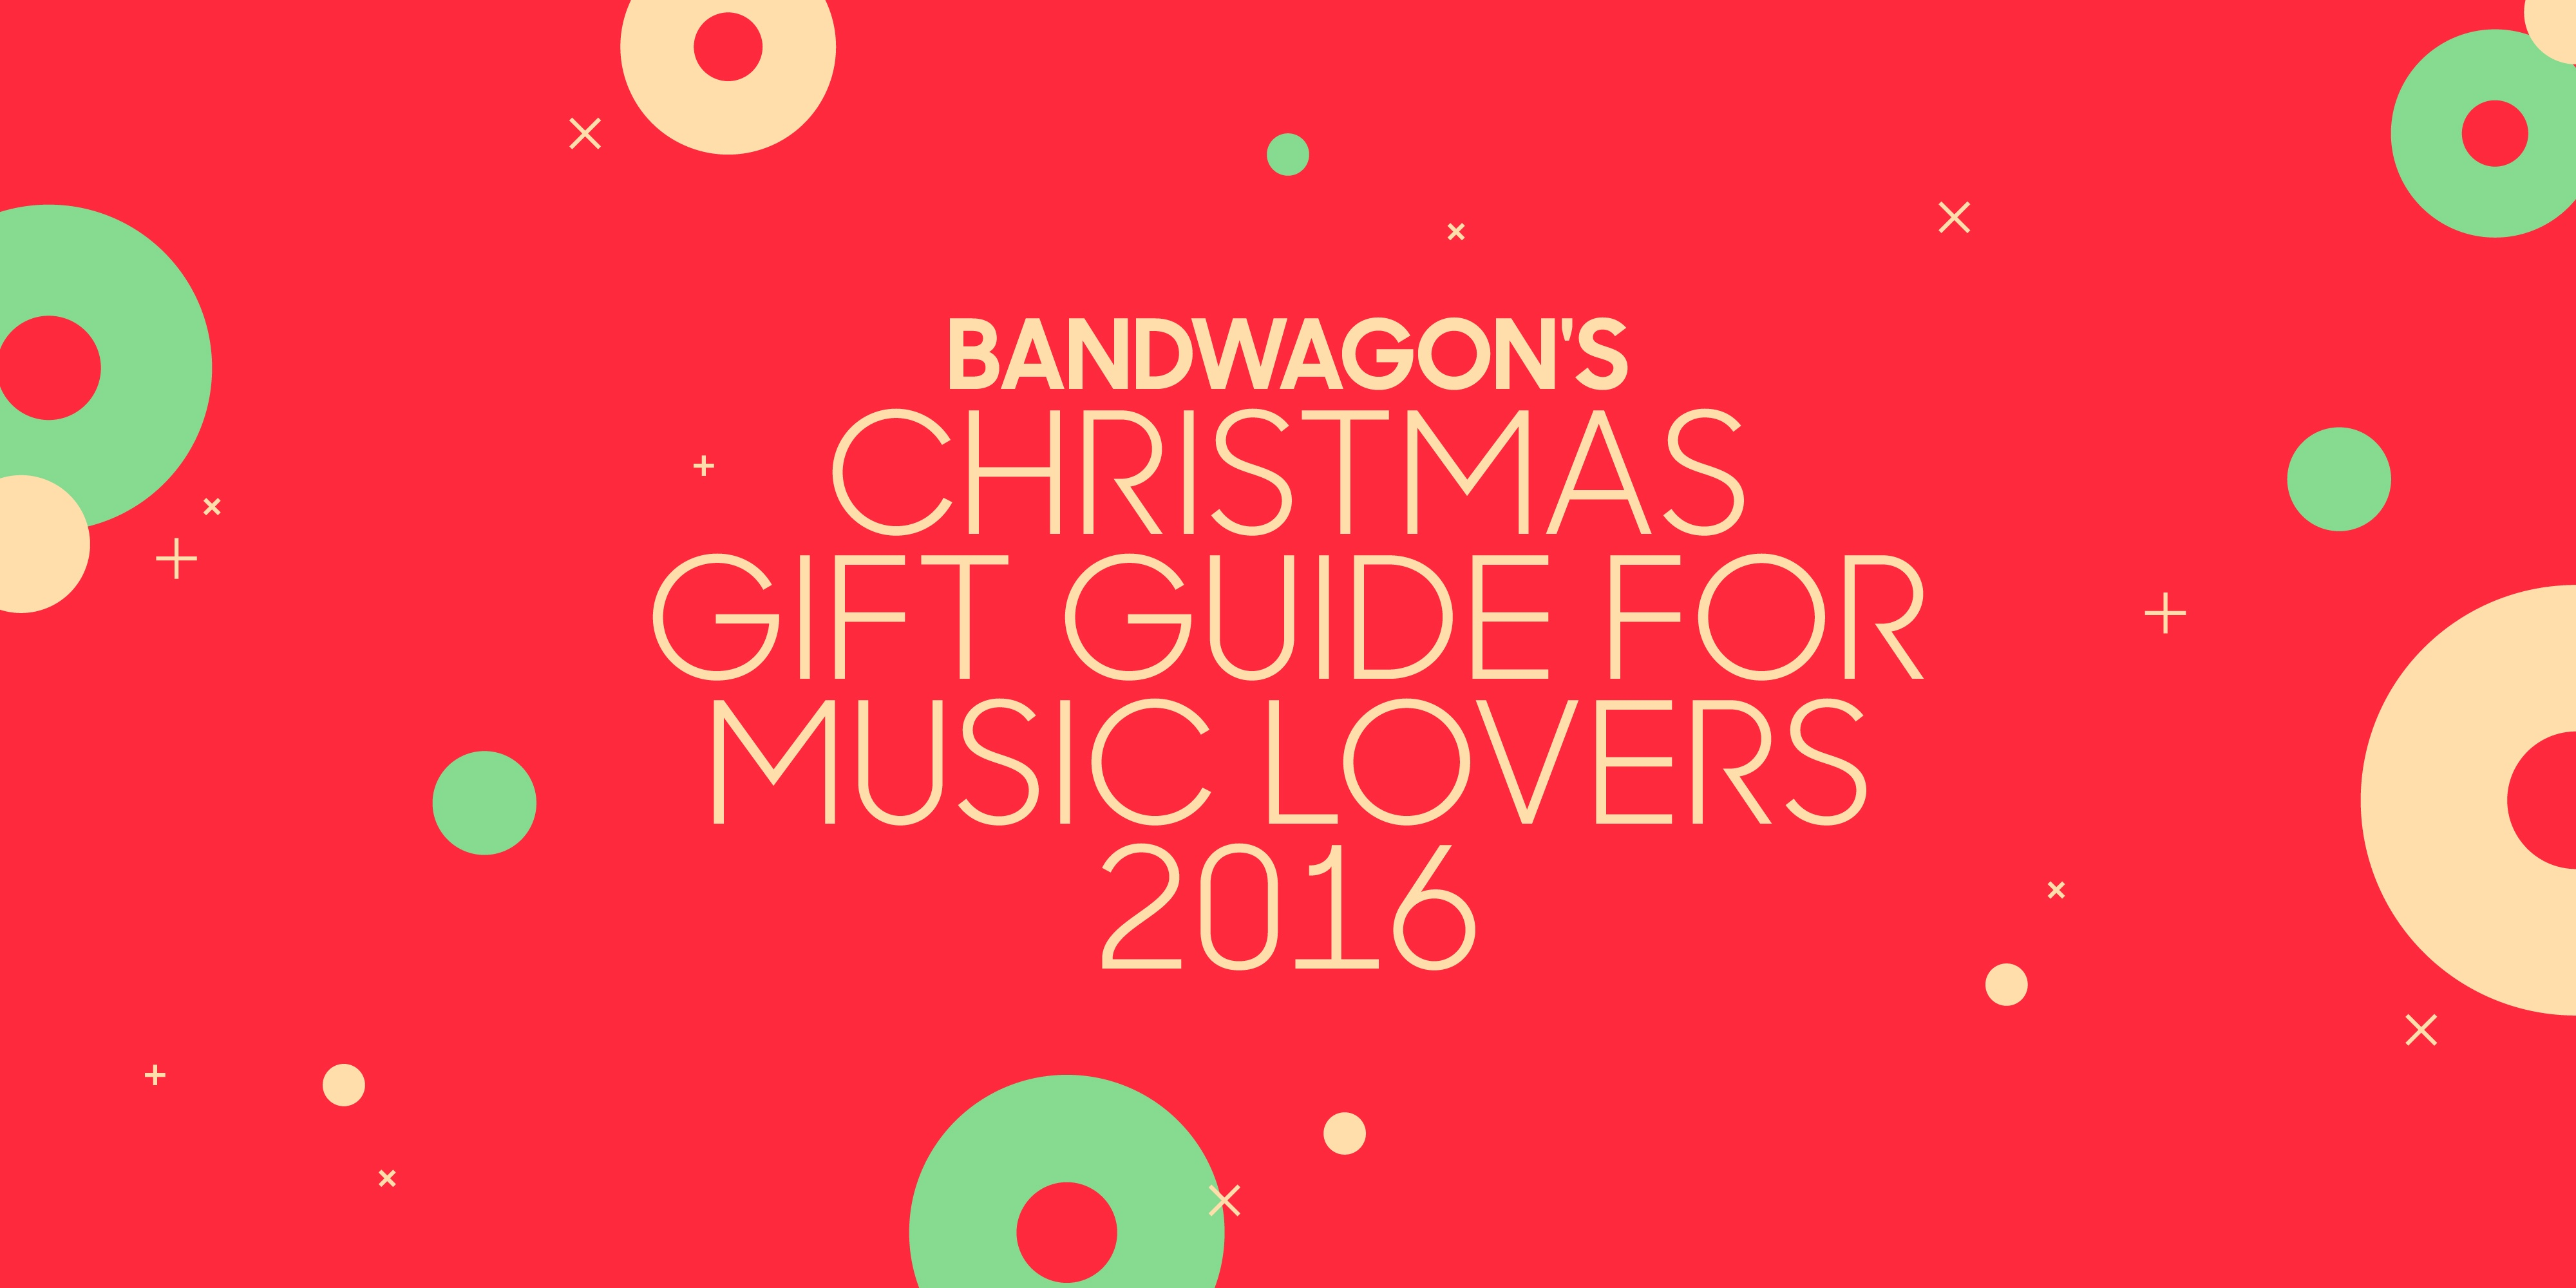 Bandwagon's Christmas Gift Guide For Music Lovers 2016